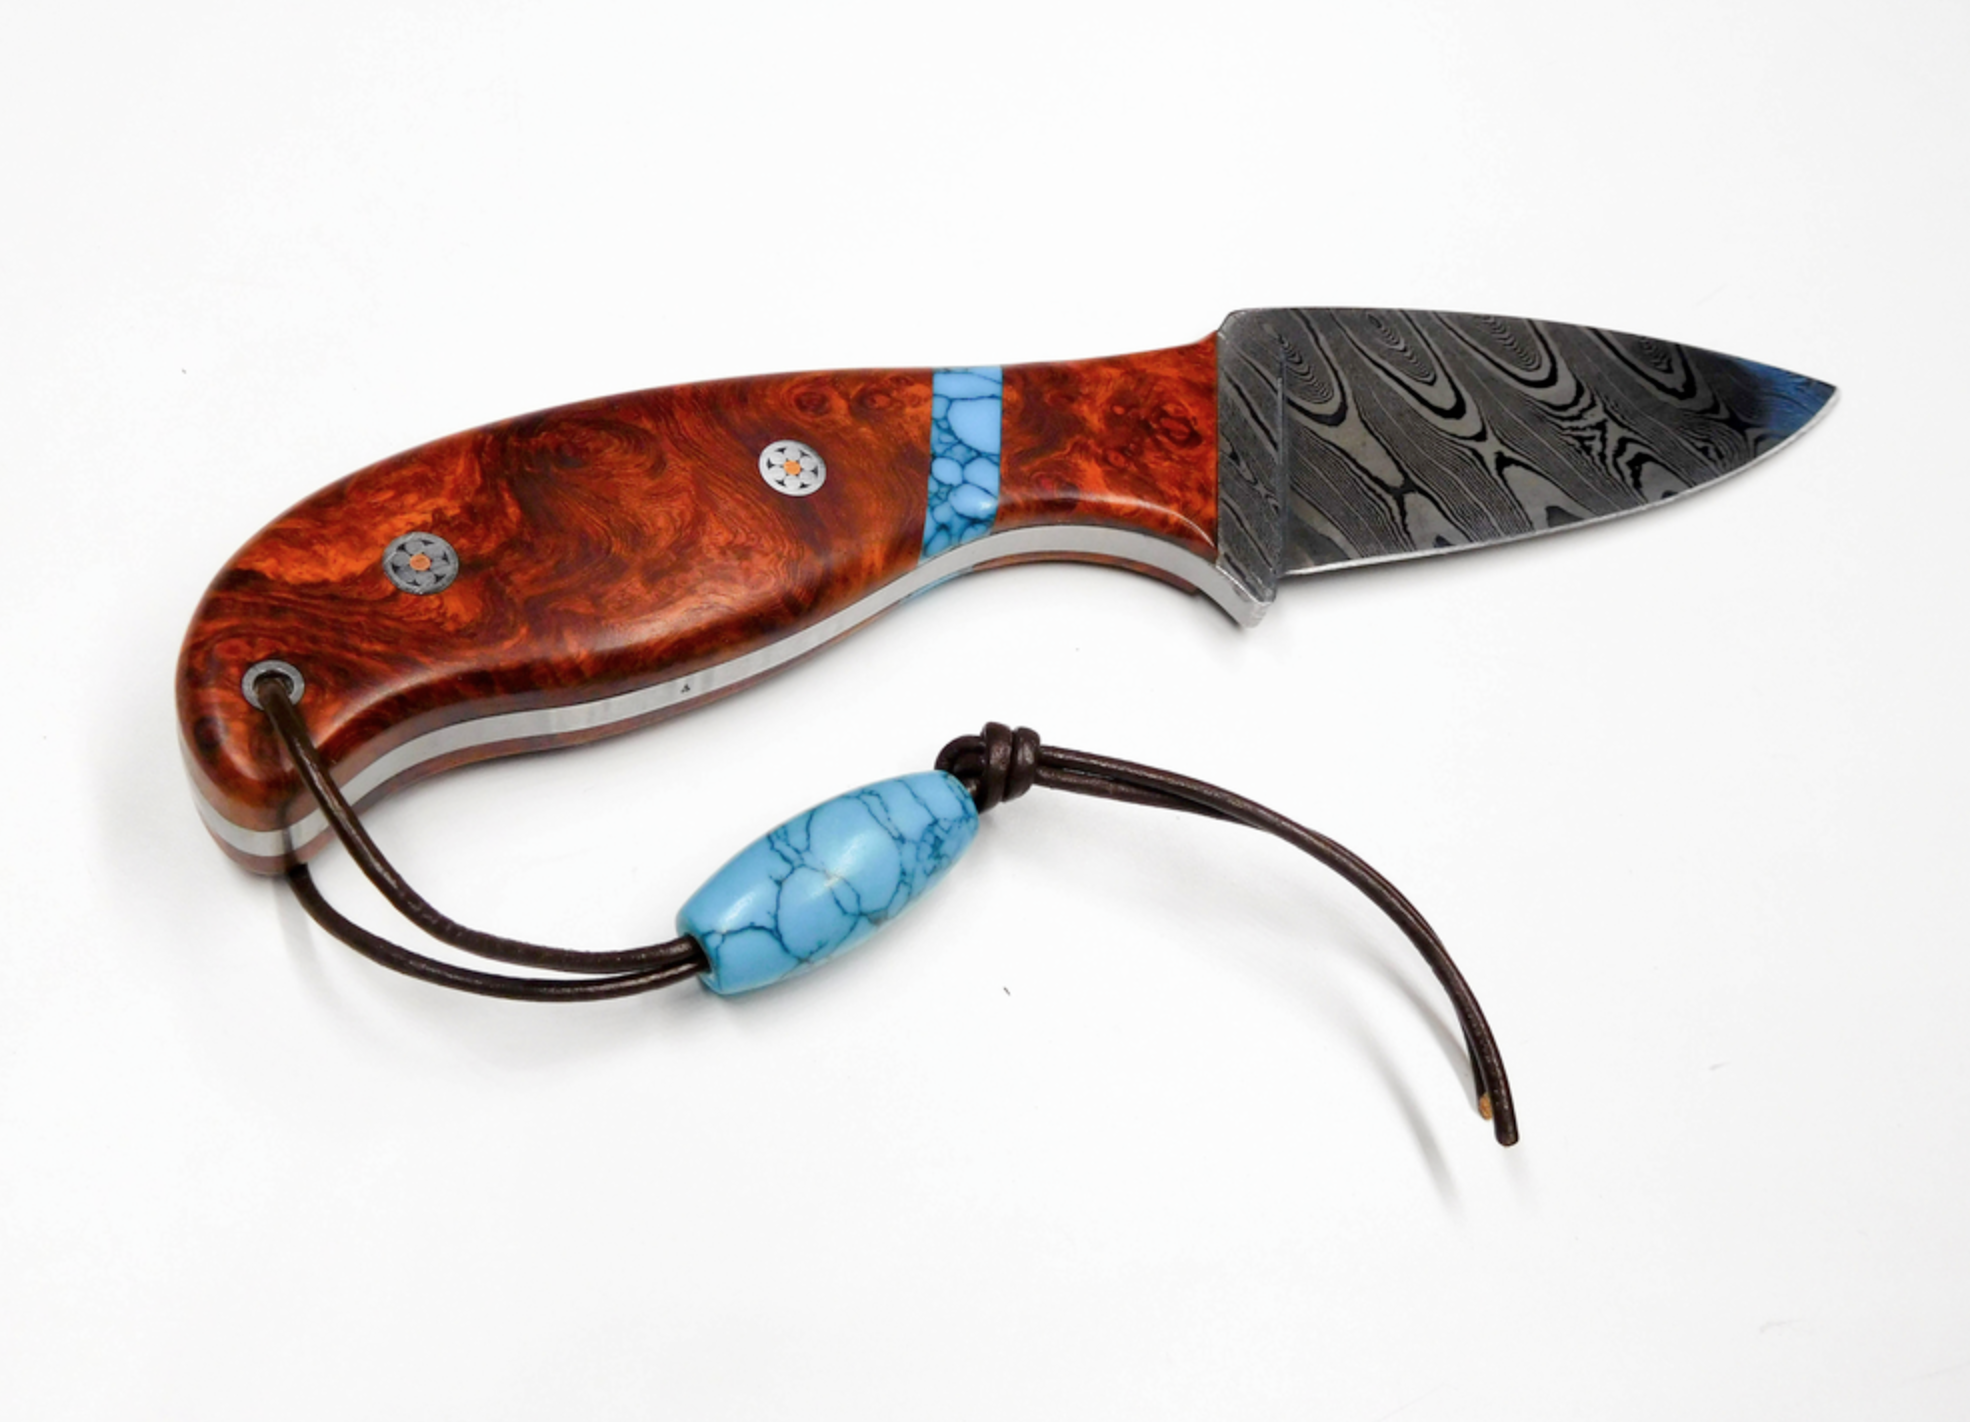 Brent Nilson - http://www.jbeagle.netI design, craft, and install special handle material on knife blades. Wood, Antler, Buffalo Horn, Buffalo Bone, Camel Bone, OtherI specialize in Damascus multi layer steel blades